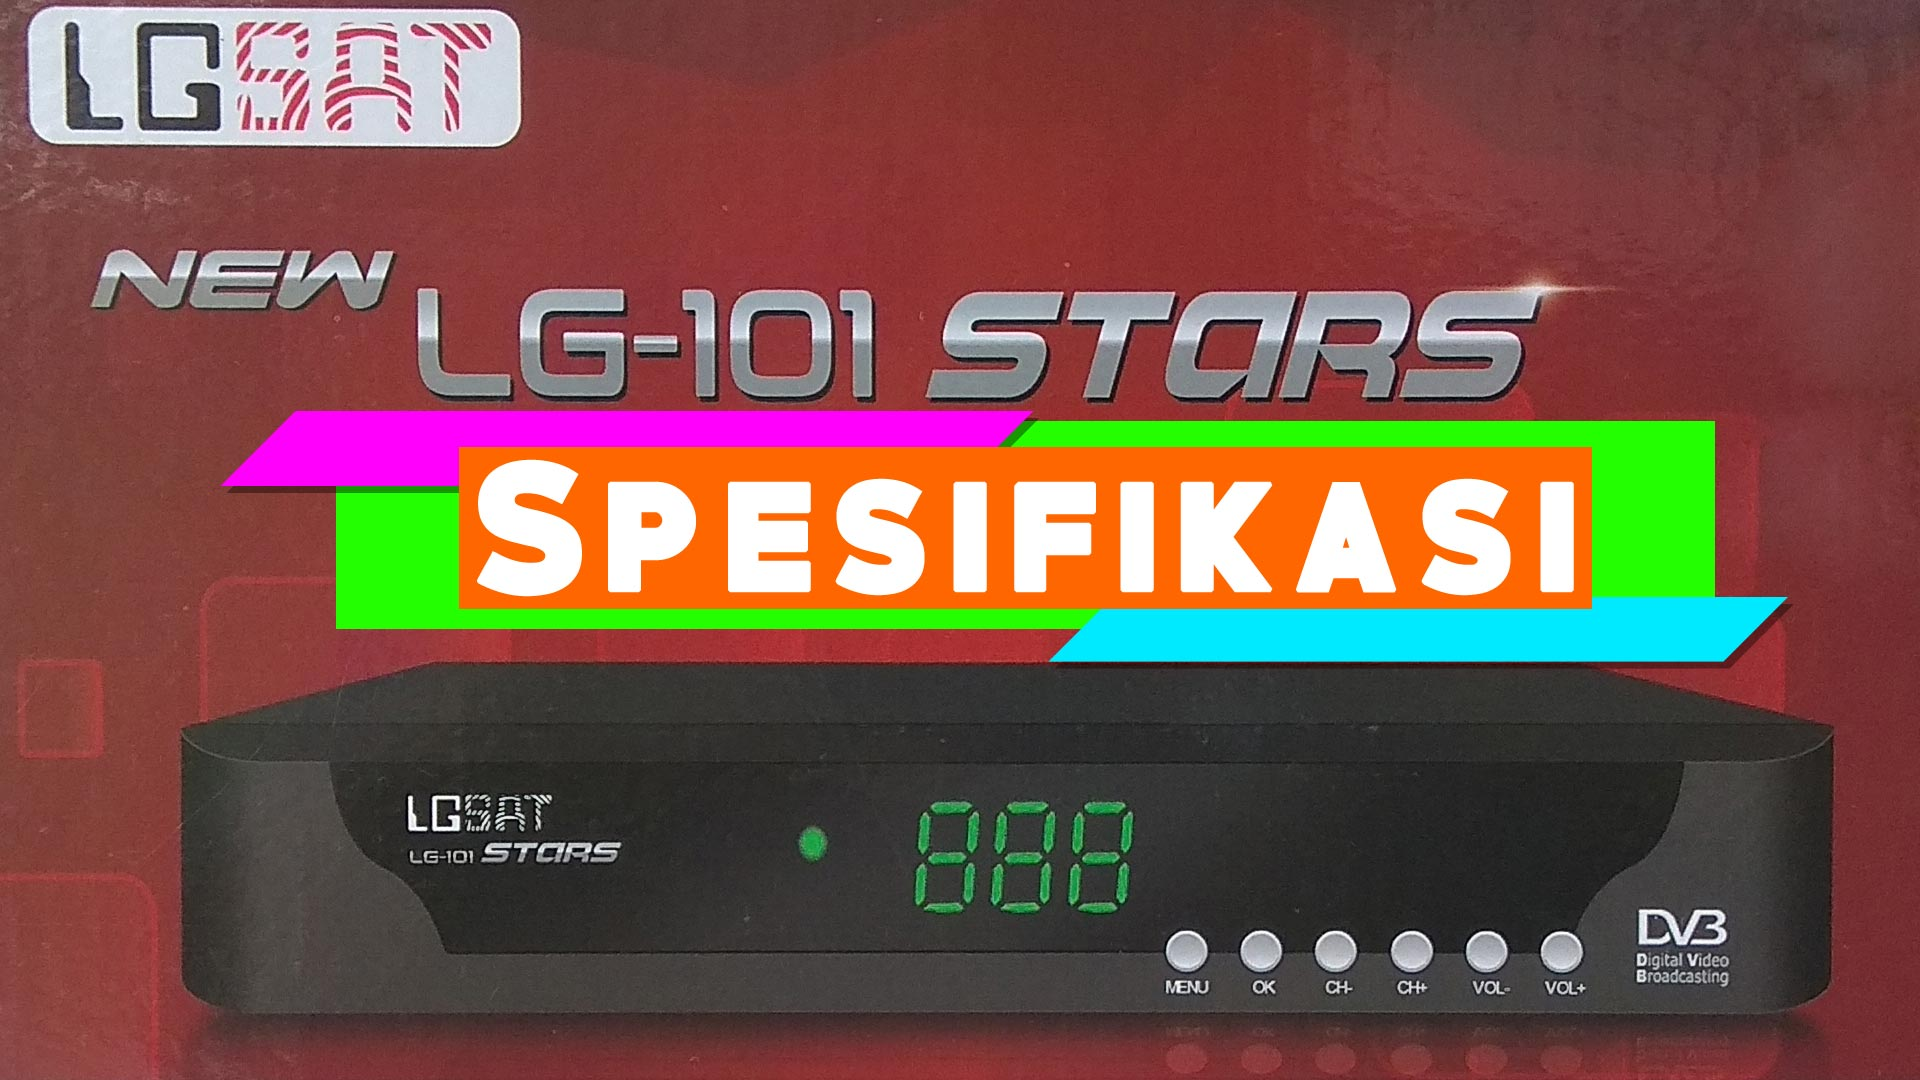 Harga Spesifikasi Receiver LGsat Star 101 HD New GuoXin